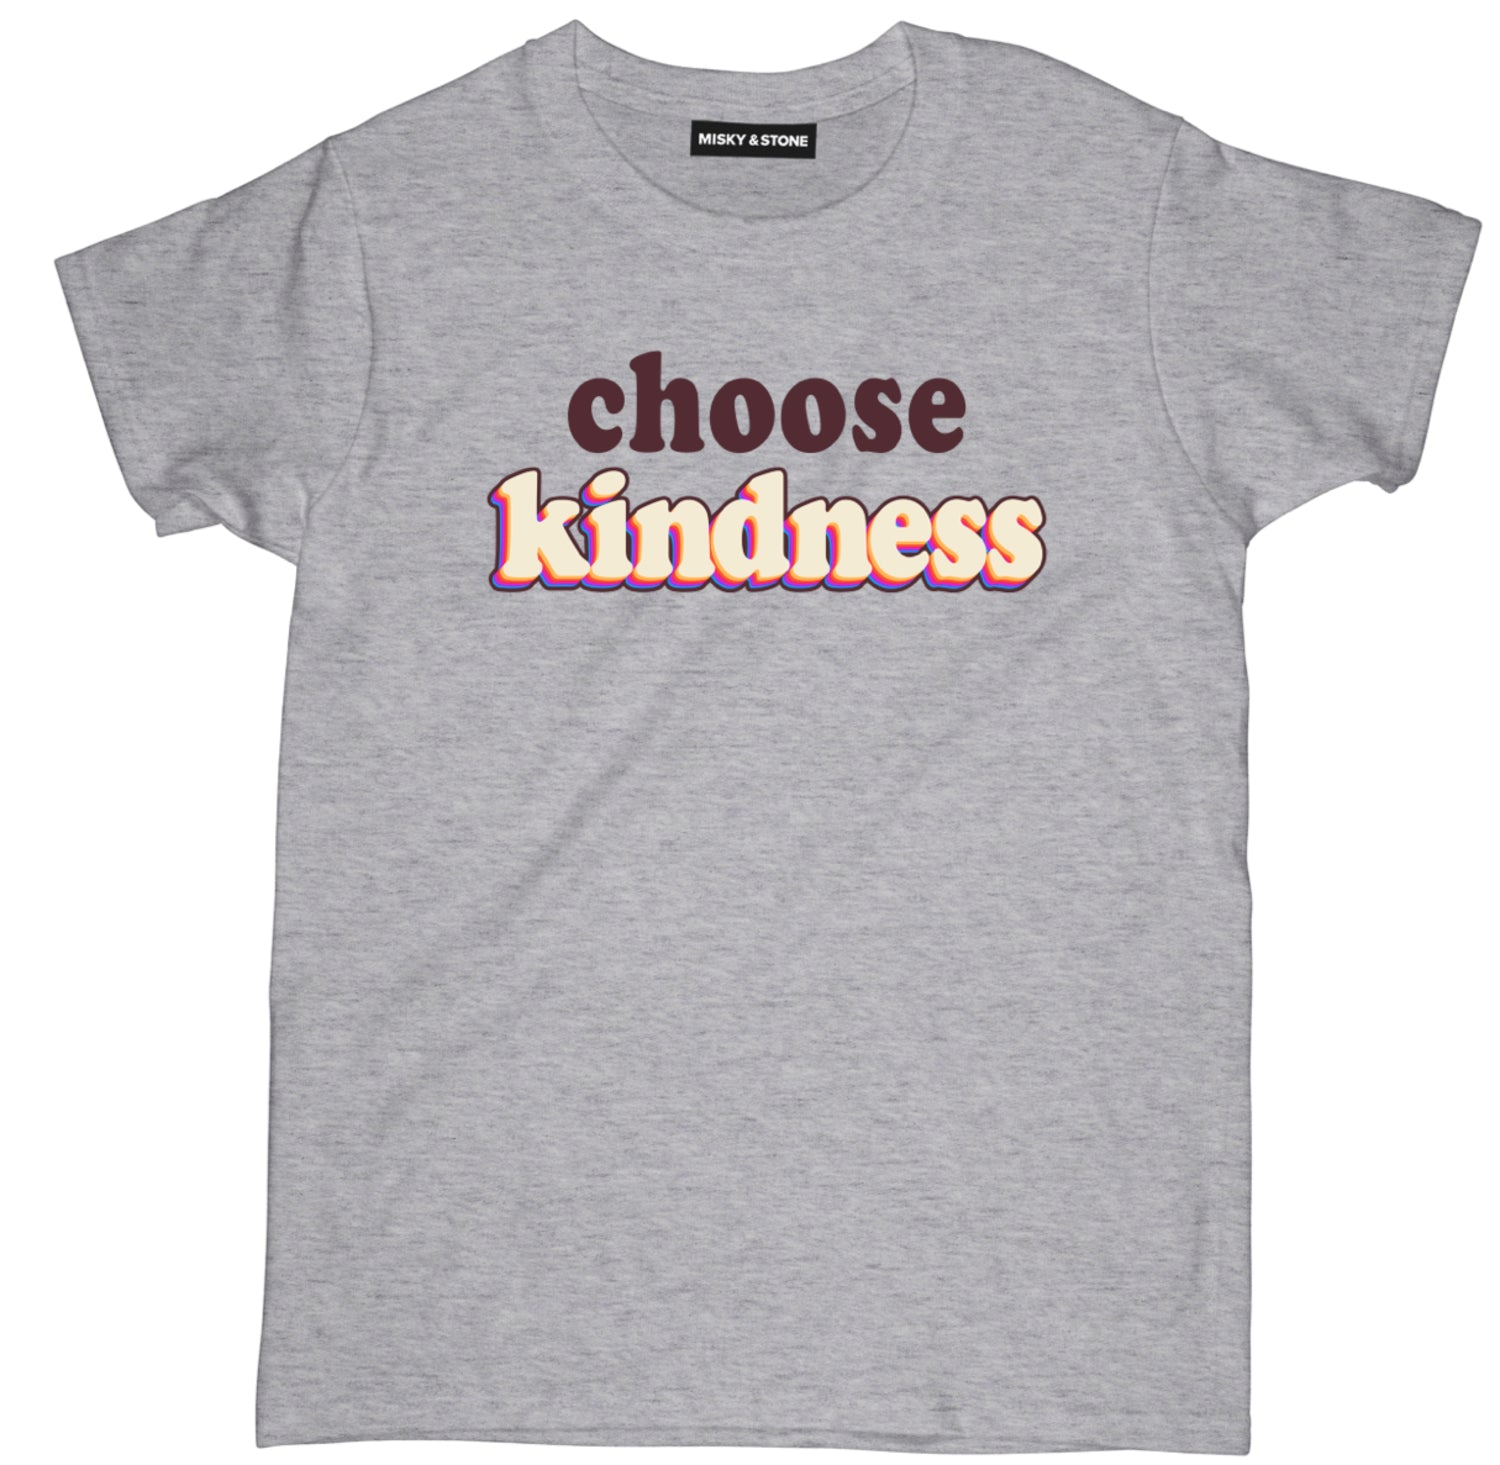 choose kindness shirt, spiritual t shirts, spiritual shirts, spiritual quote t shirts,